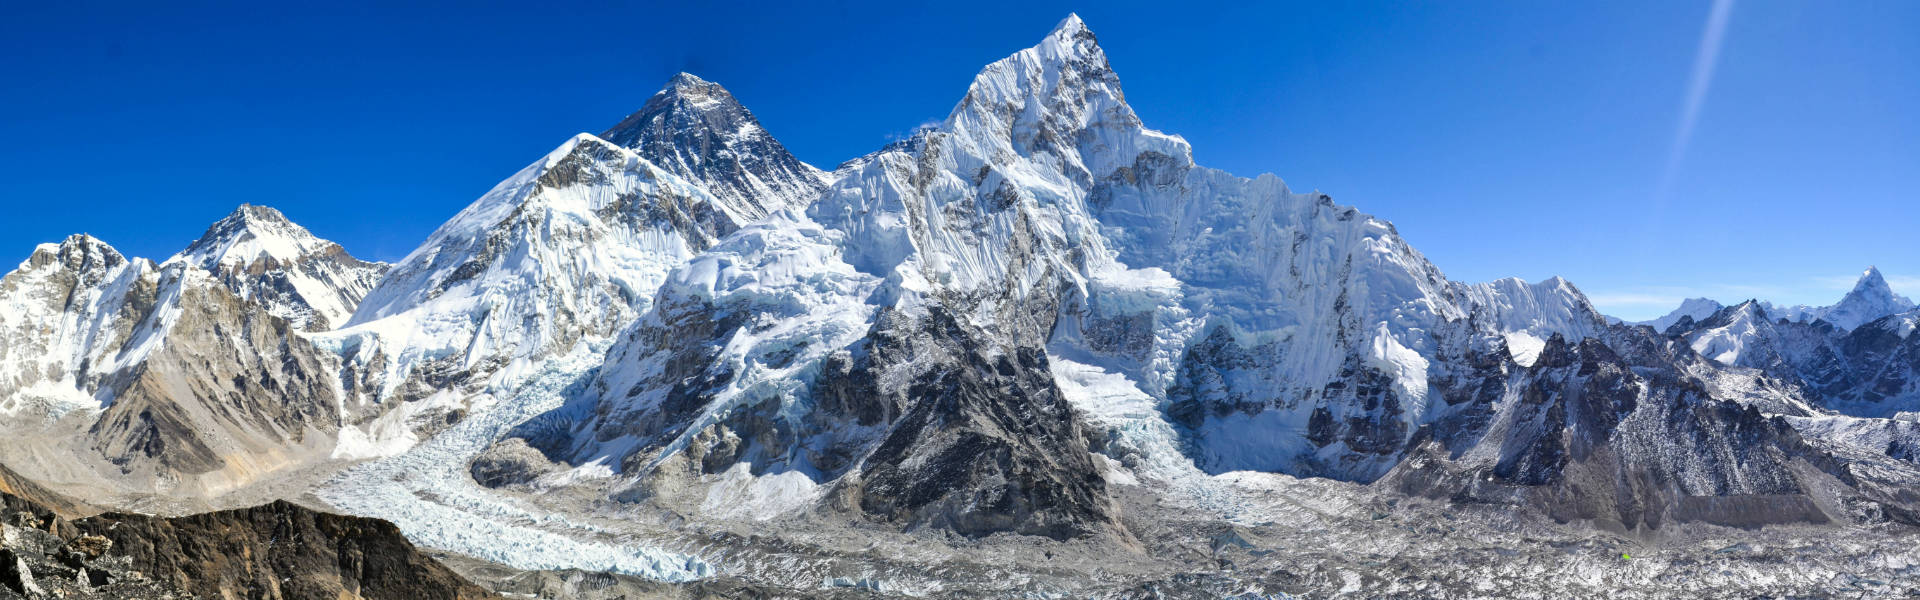 Mount Everest from Kala Patthar, Everest Region